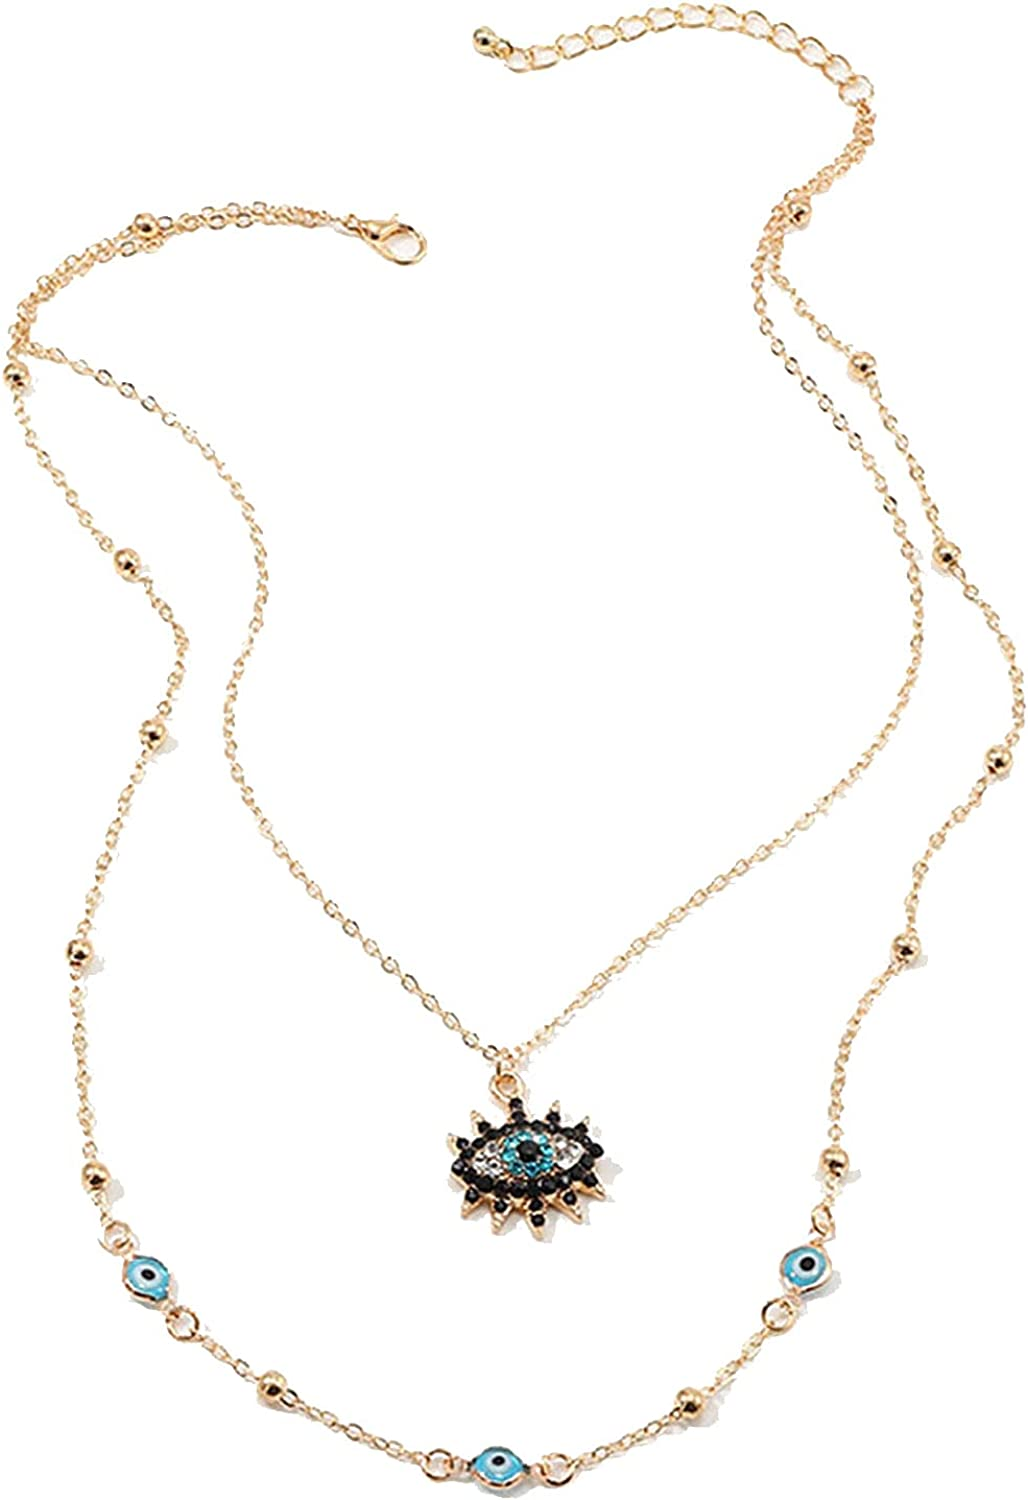 Sttiafay Layered Evil Eye Pendant Necklace Inlaid Rhinestone Charm Necklace Turkish Lucky Choker Necklace Jewelry for Women and Girls